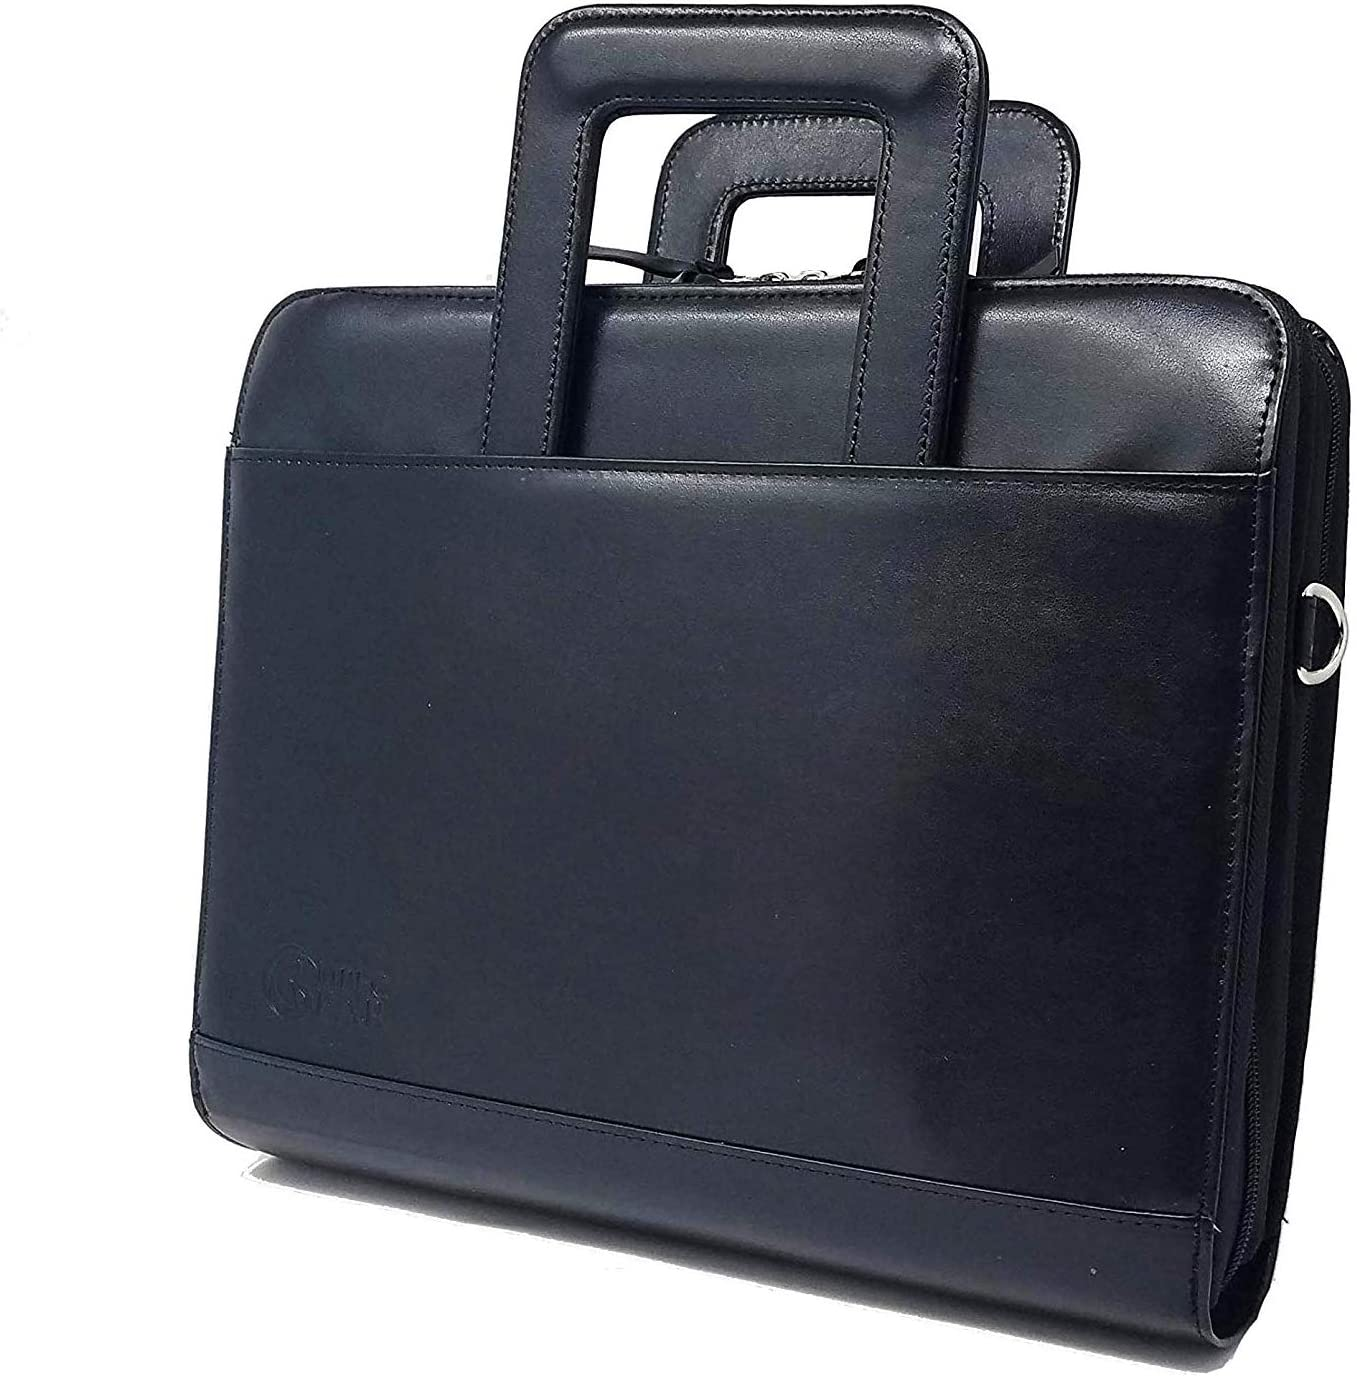 ImpecGear Travel Briefcase Portfolio Padfolio 3- Ring Binder File Divider Organizer W/Smart Handle Double Zippered Closure (Black-UPGRADED-1.5 INCHES RING-DC3062)